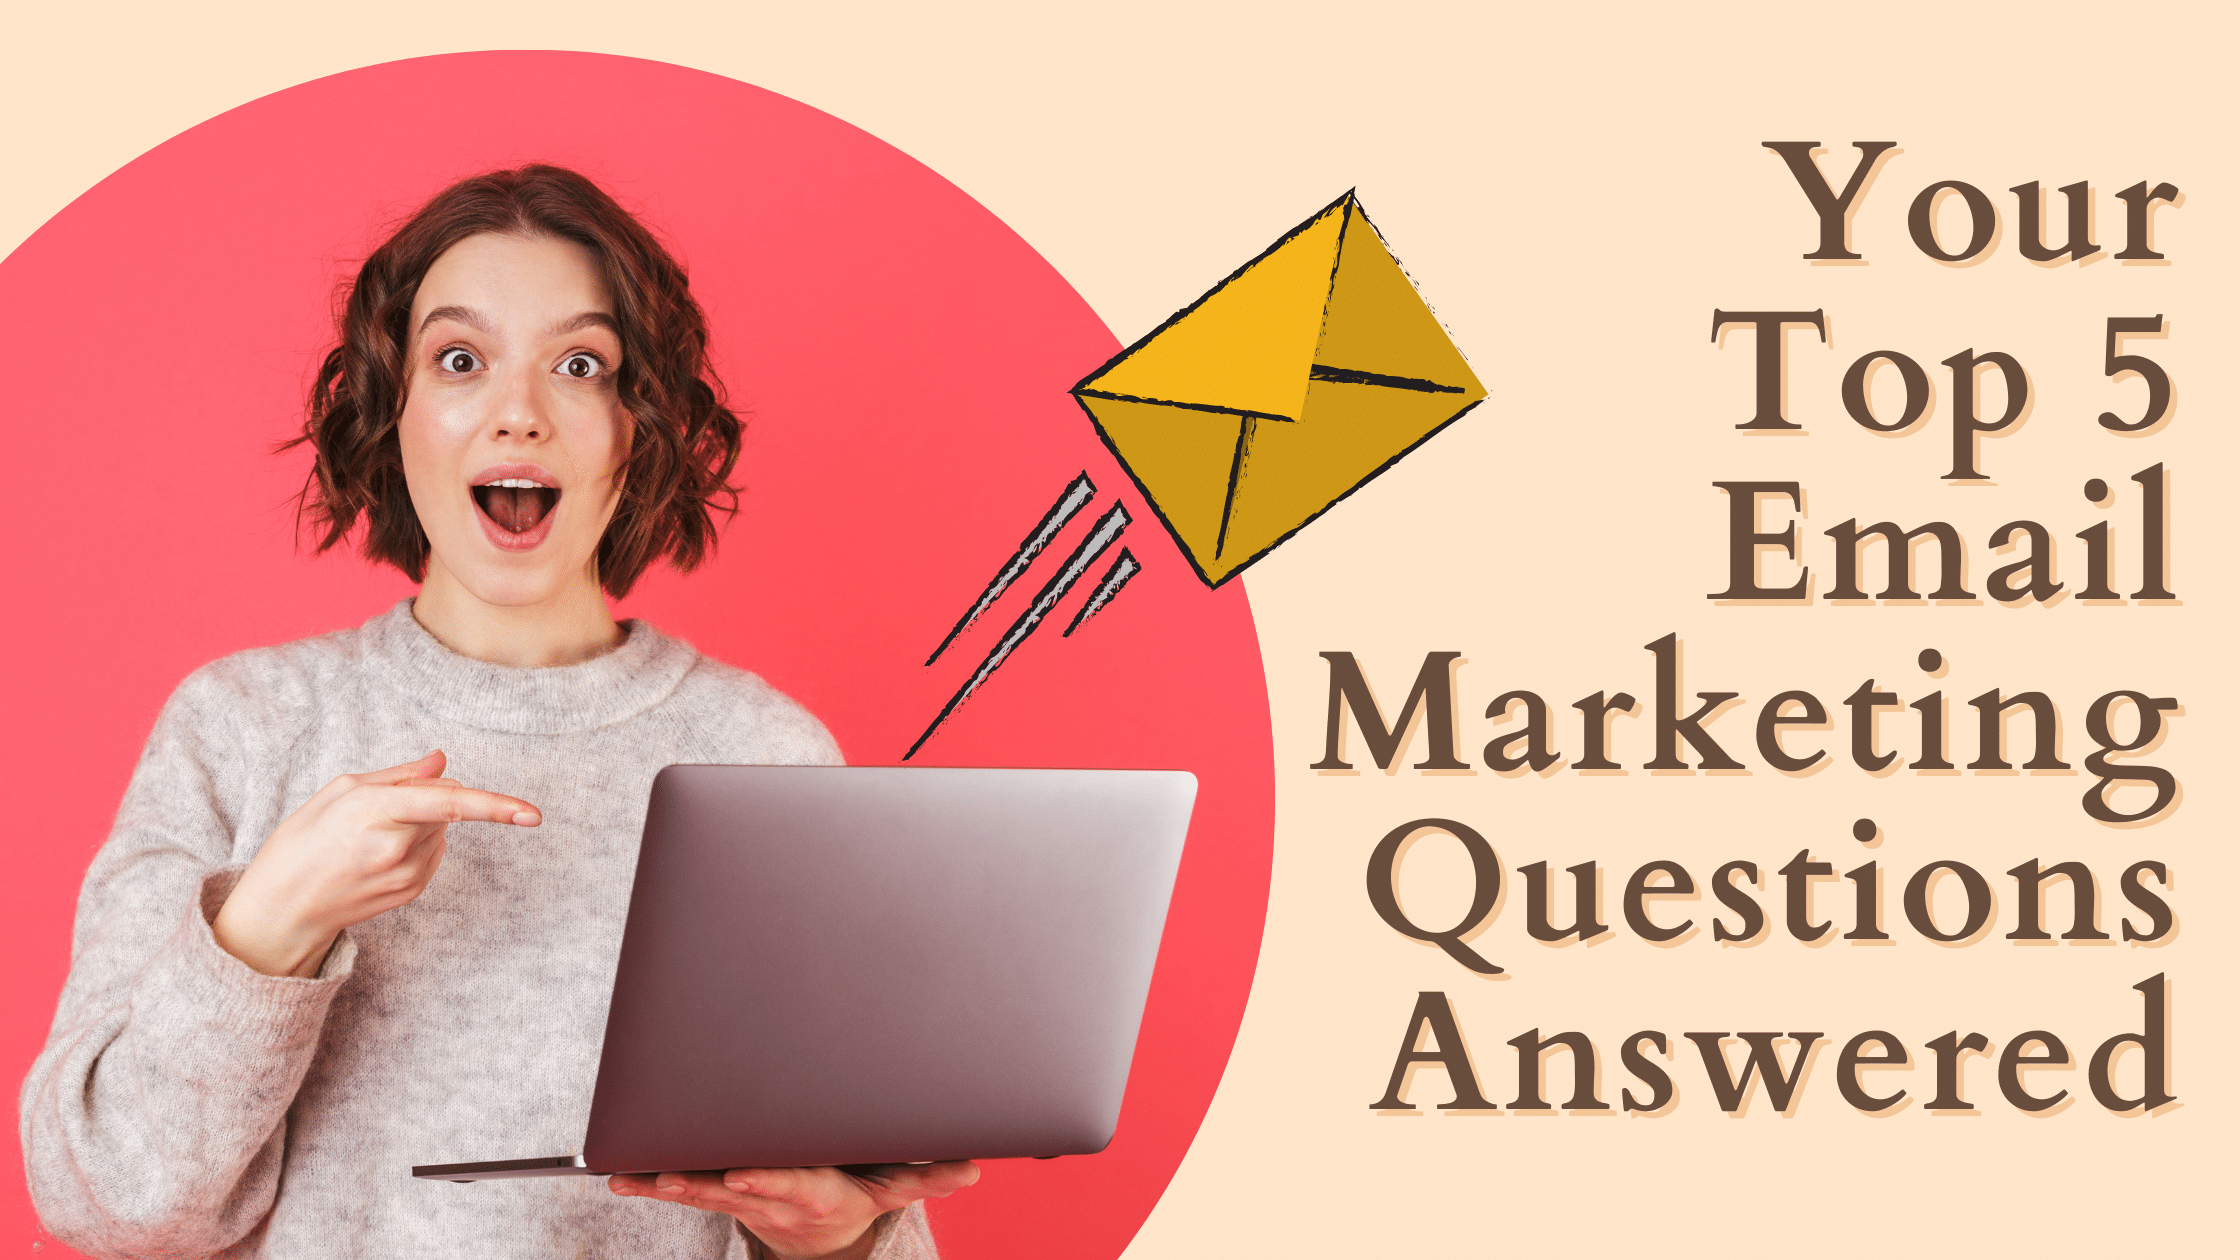 Your Top 5 Email Marketing Questions Answered!